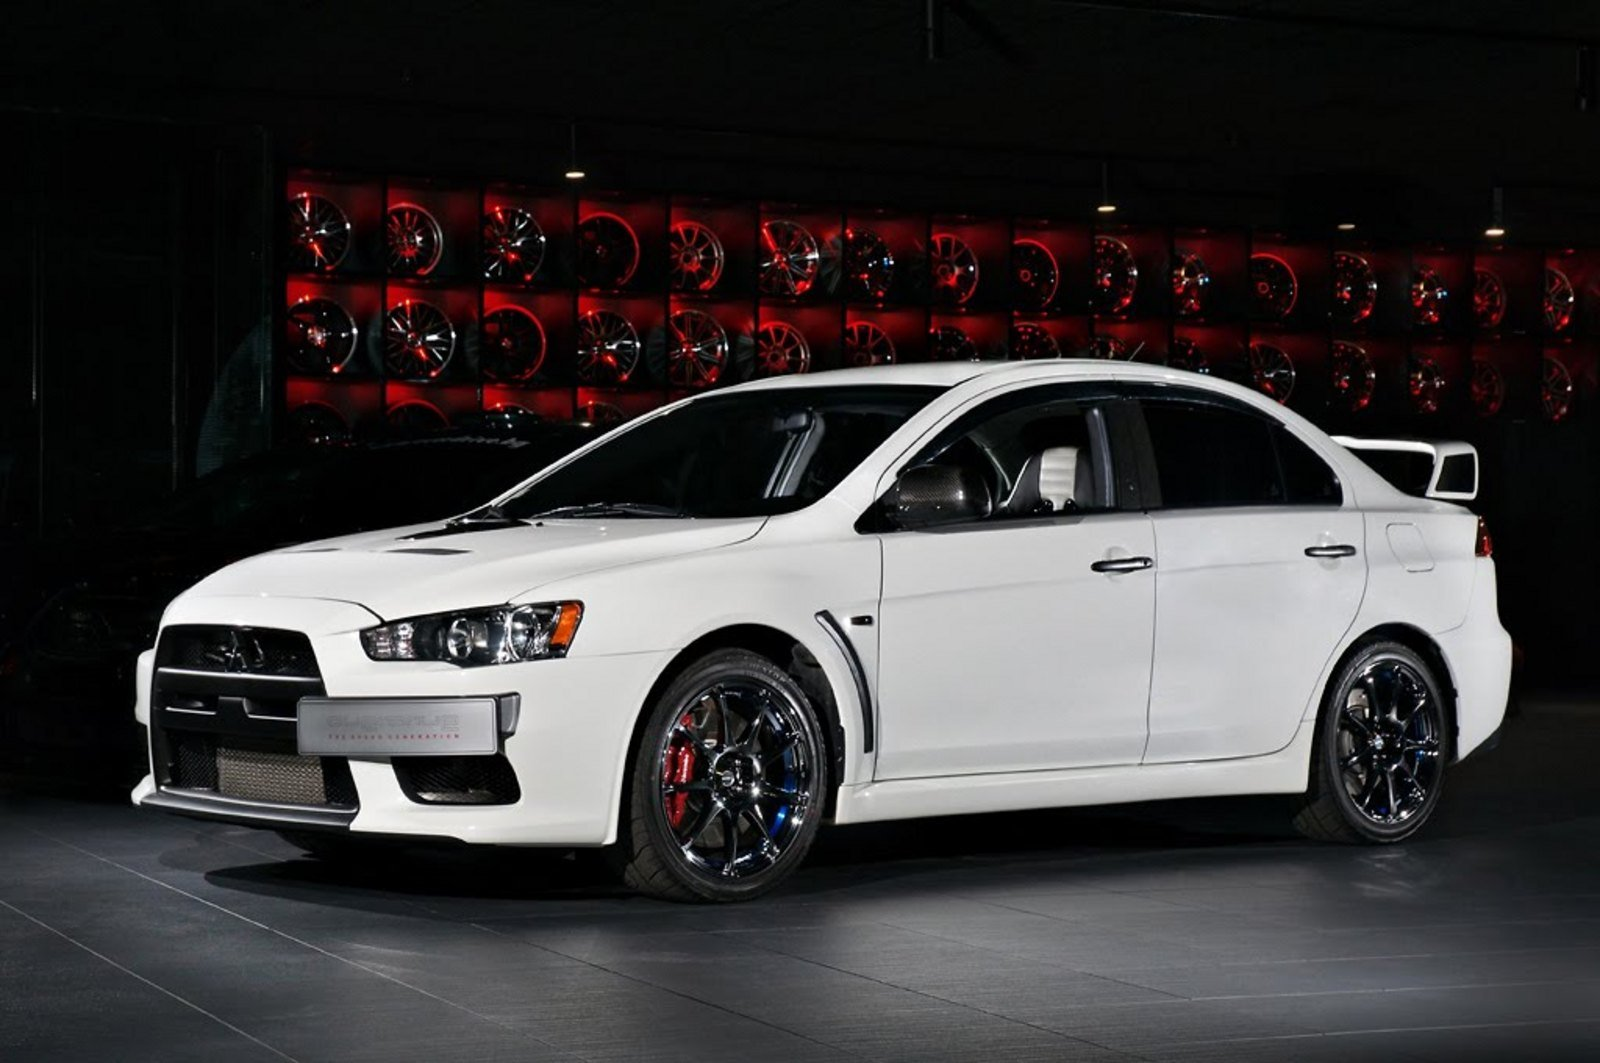 2011 Mitsubishi Lancer Evo X By Vilner And OverDrive ...